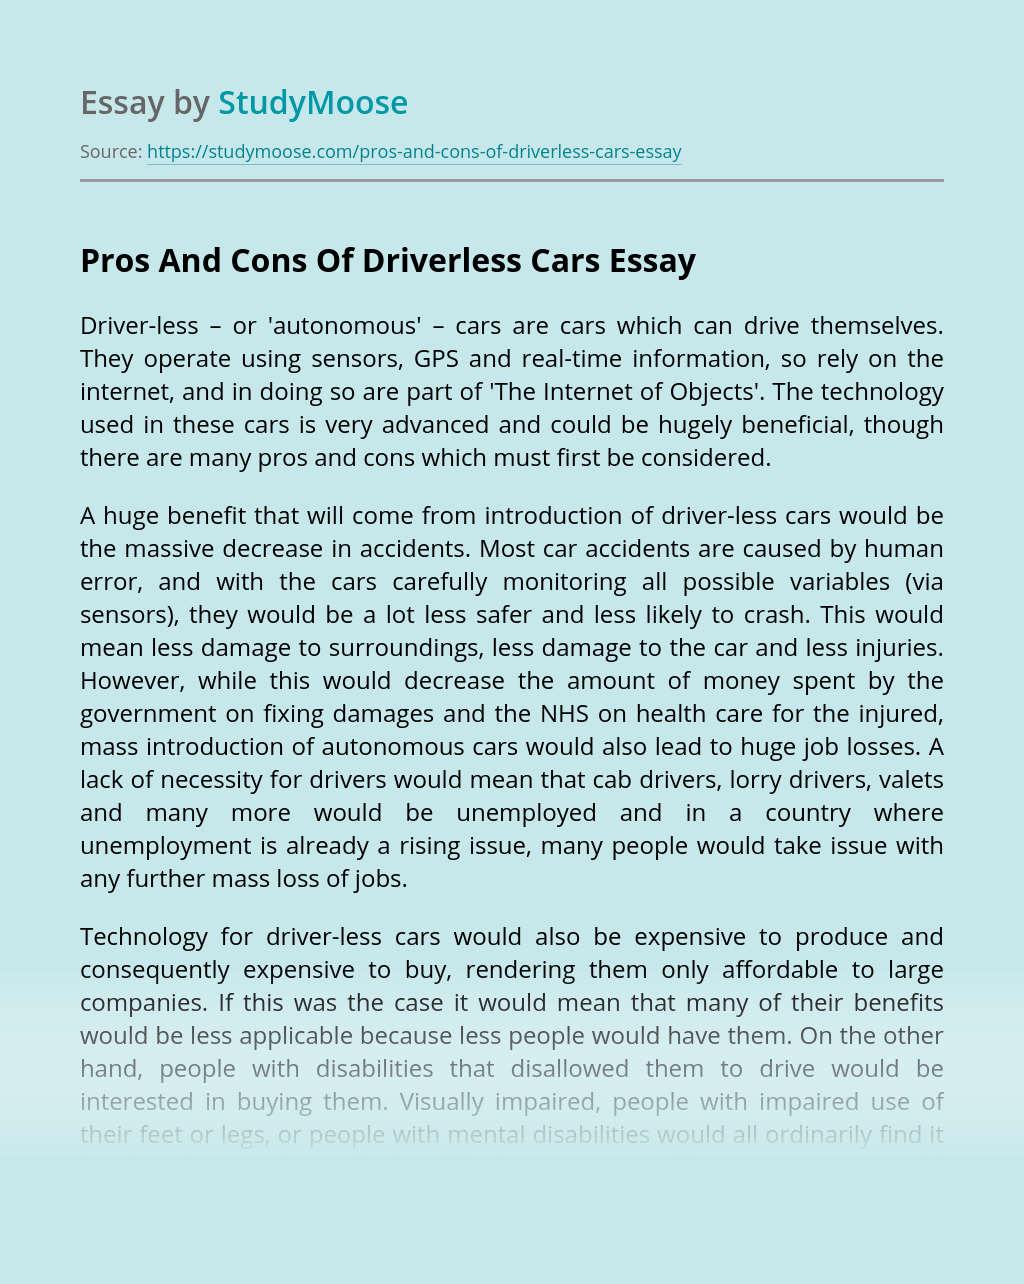 Pros And Cons Of Driverless Cars